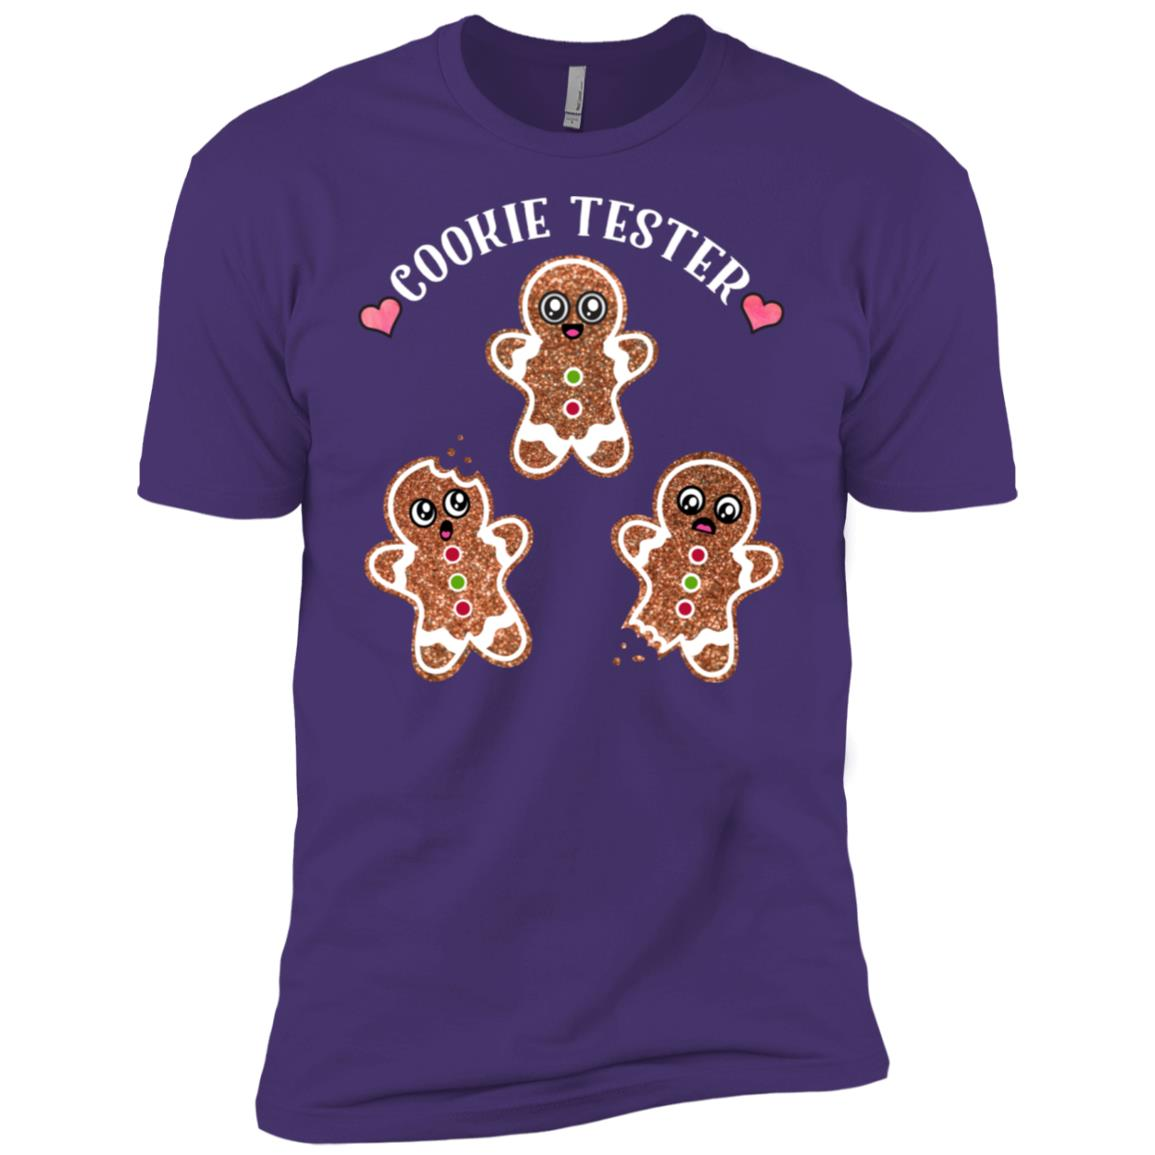 Funny Cookie Tester Gingerbread Christmas Quote Baking Men Short Sleeve T-Shirt